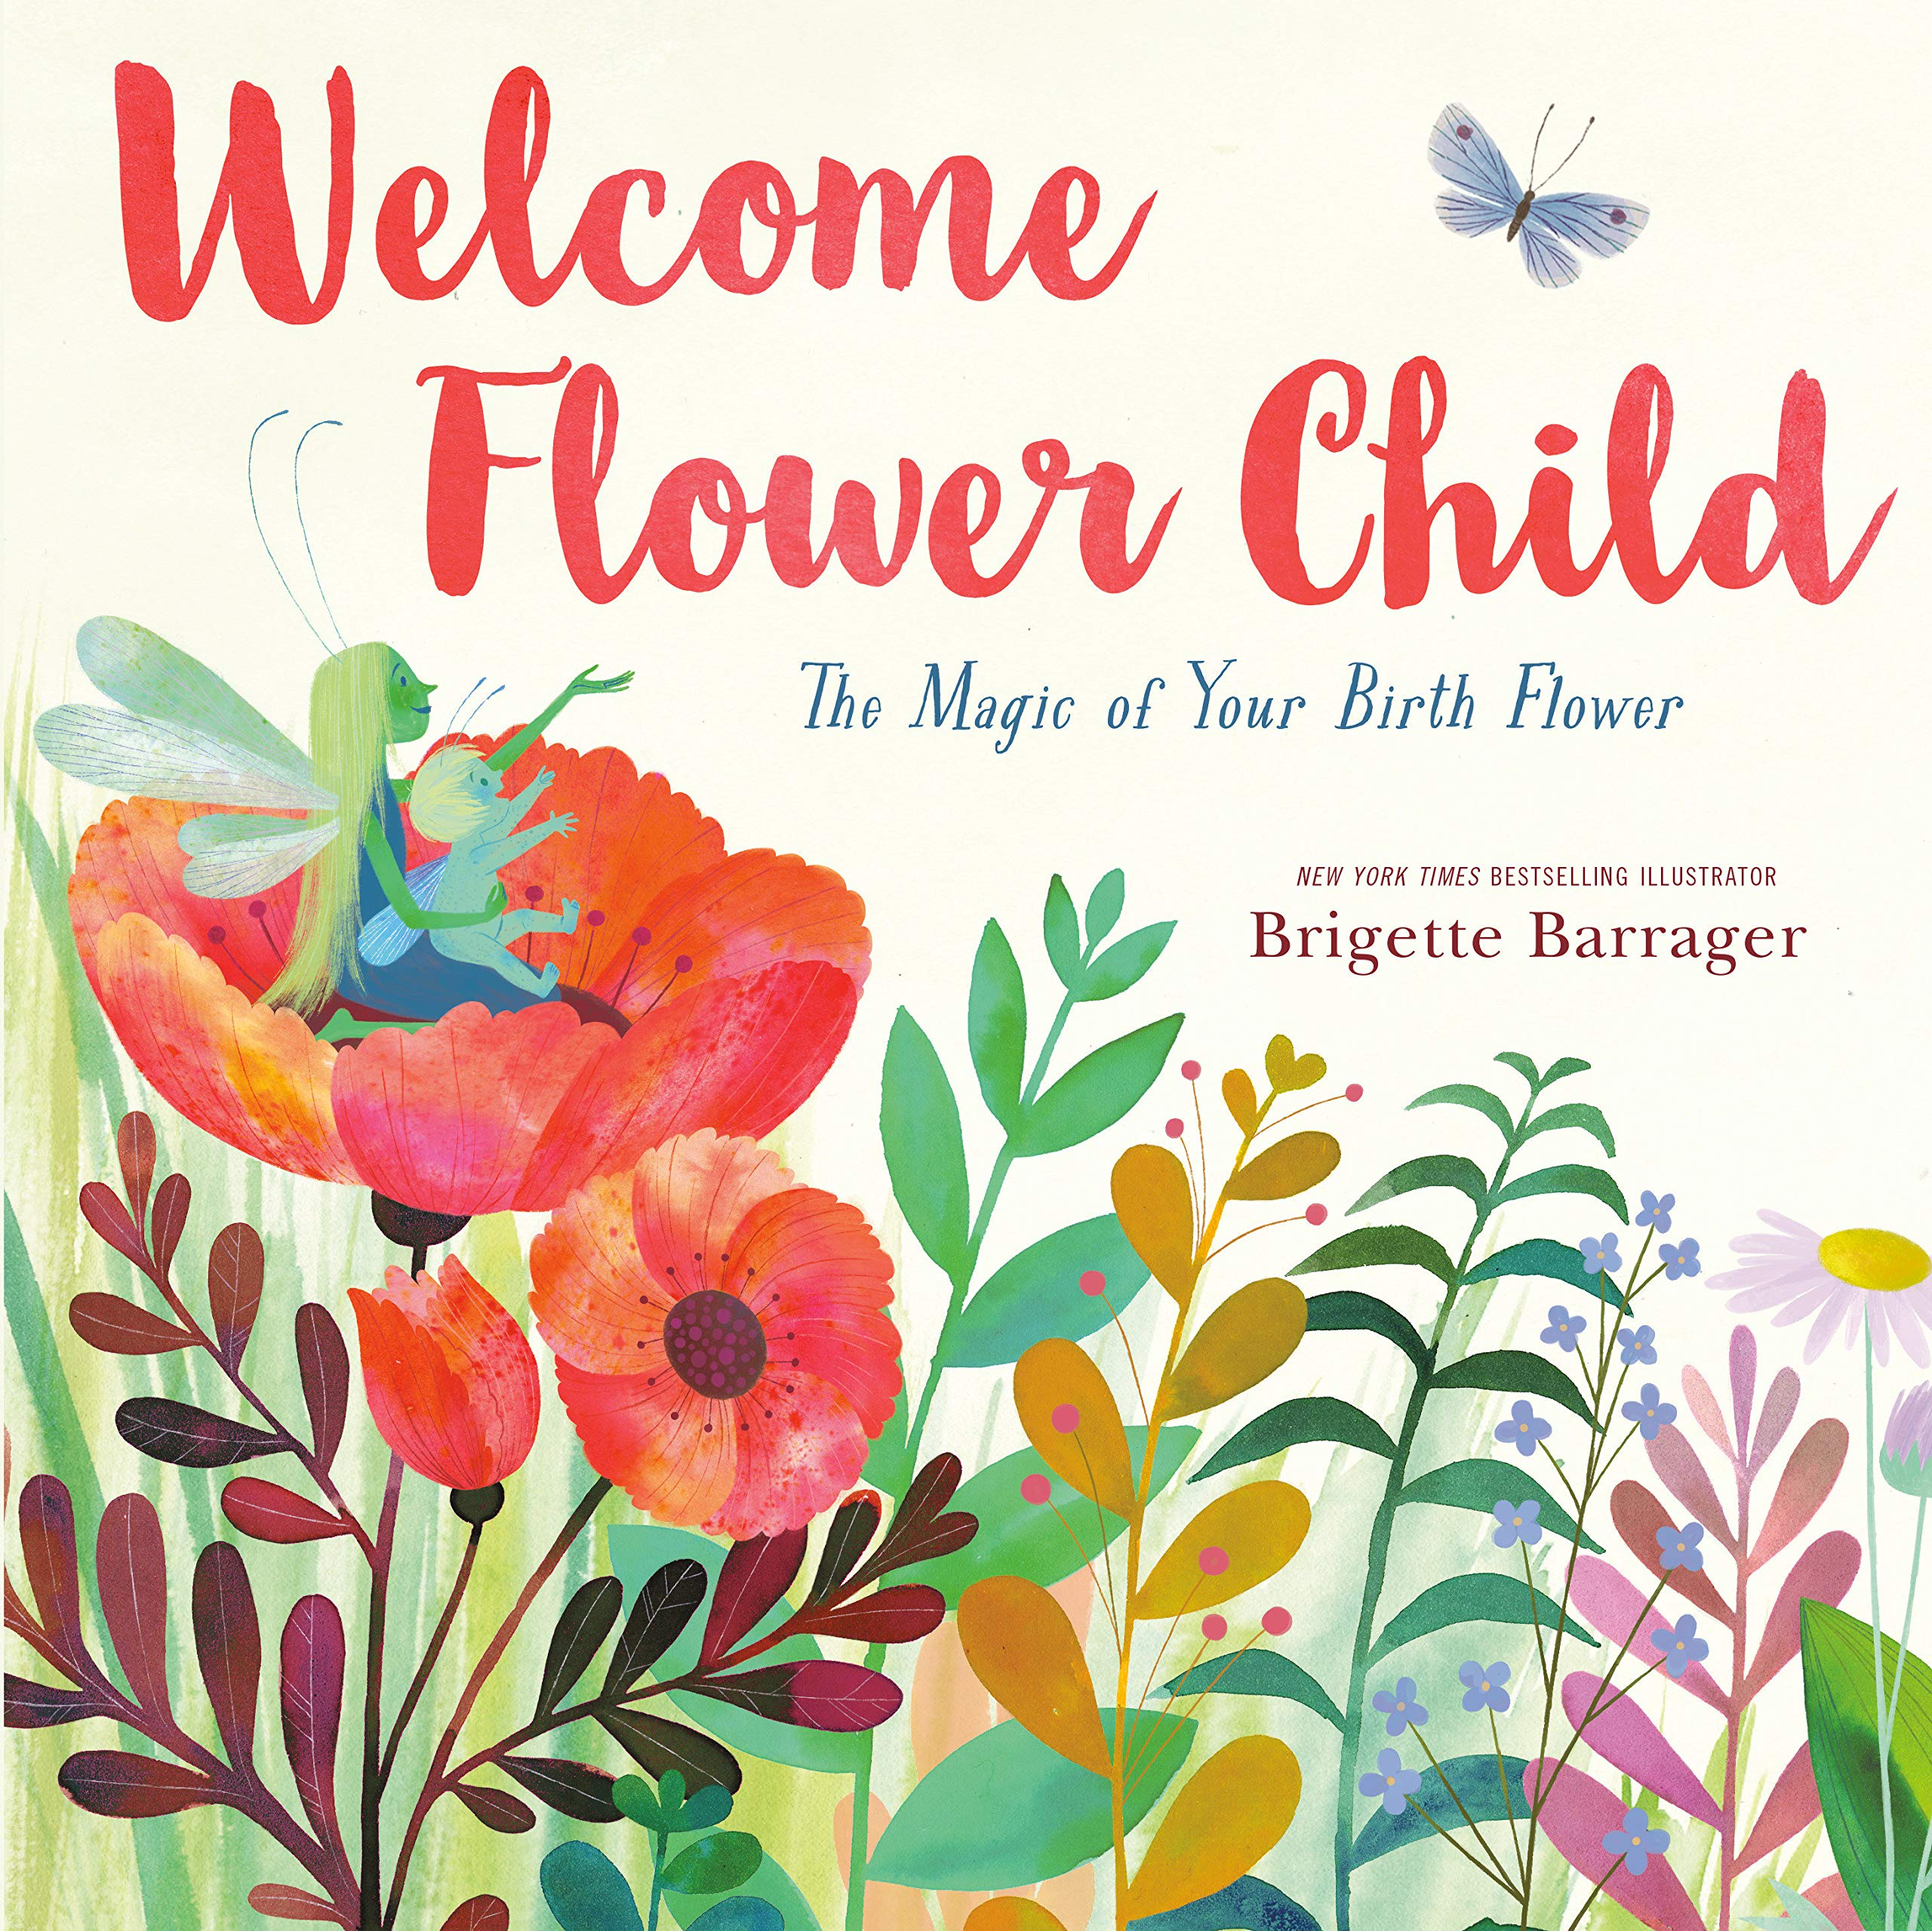 Best 2021 Books for Students: Welcome Flower Child: The Magic of Your Birth Flower: Barrager, Brigette